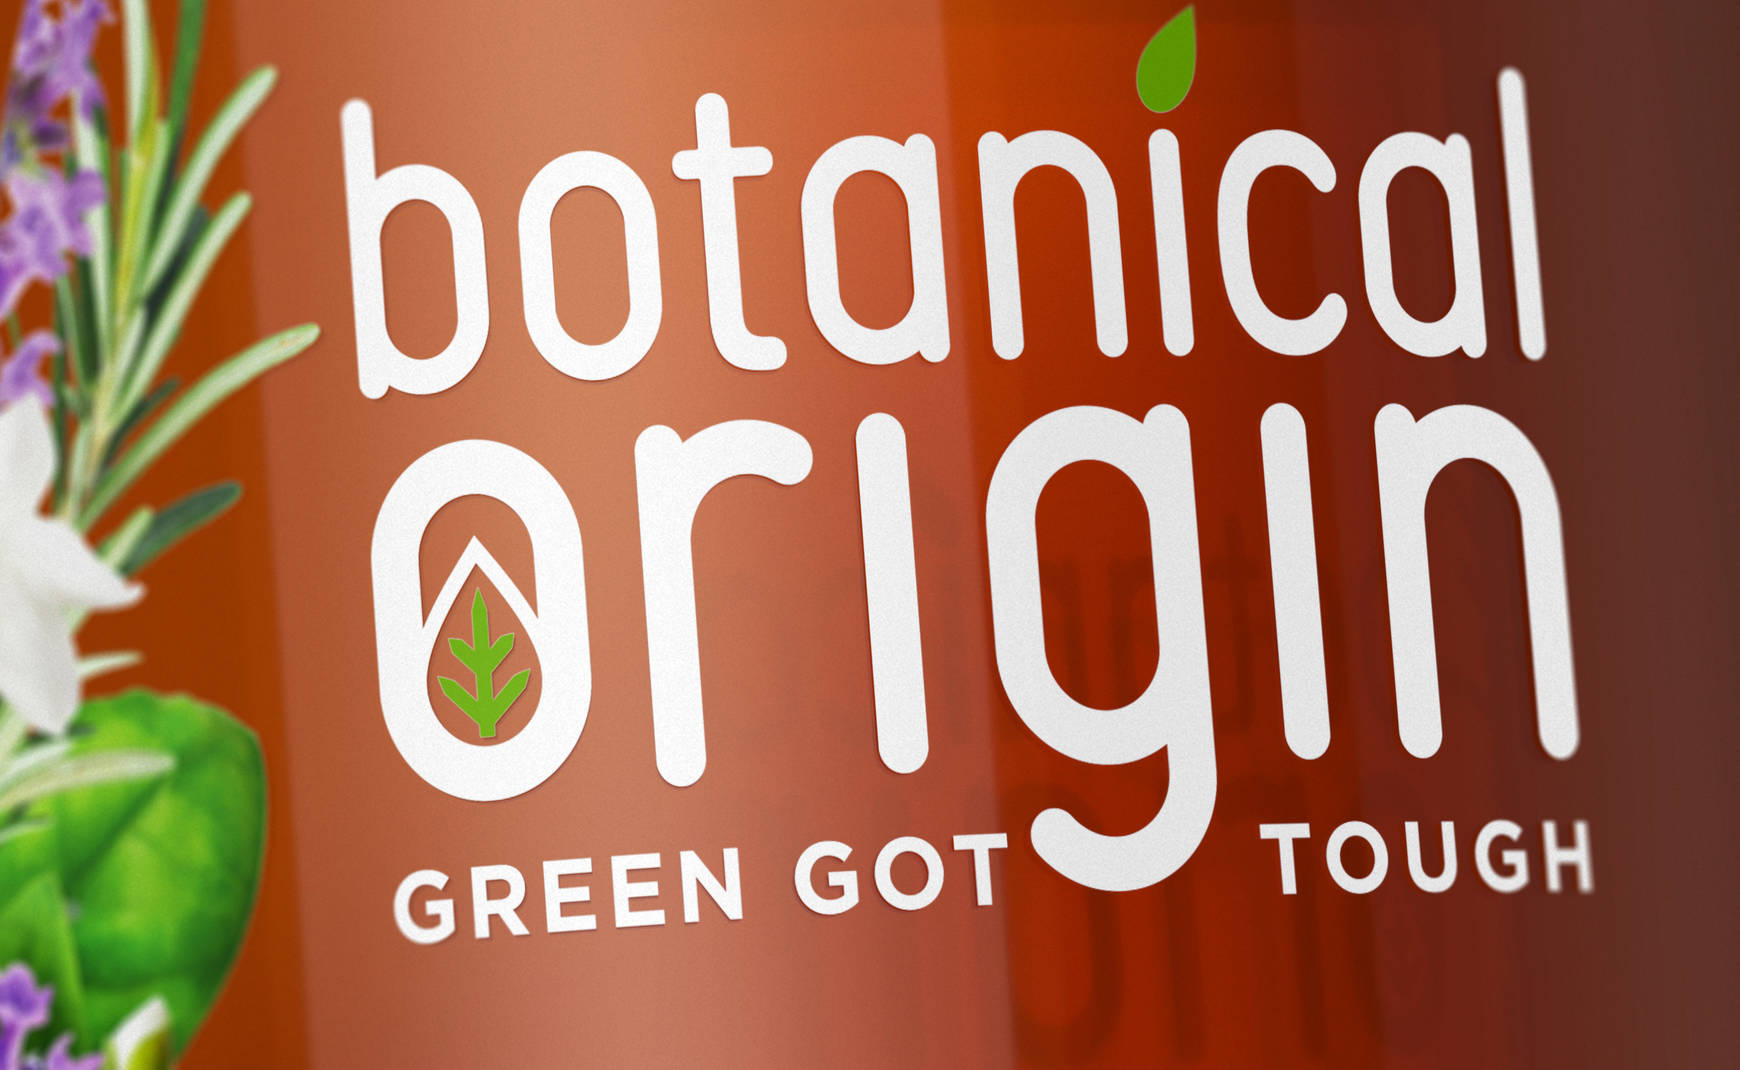 Botanical Origin | Batllegroup